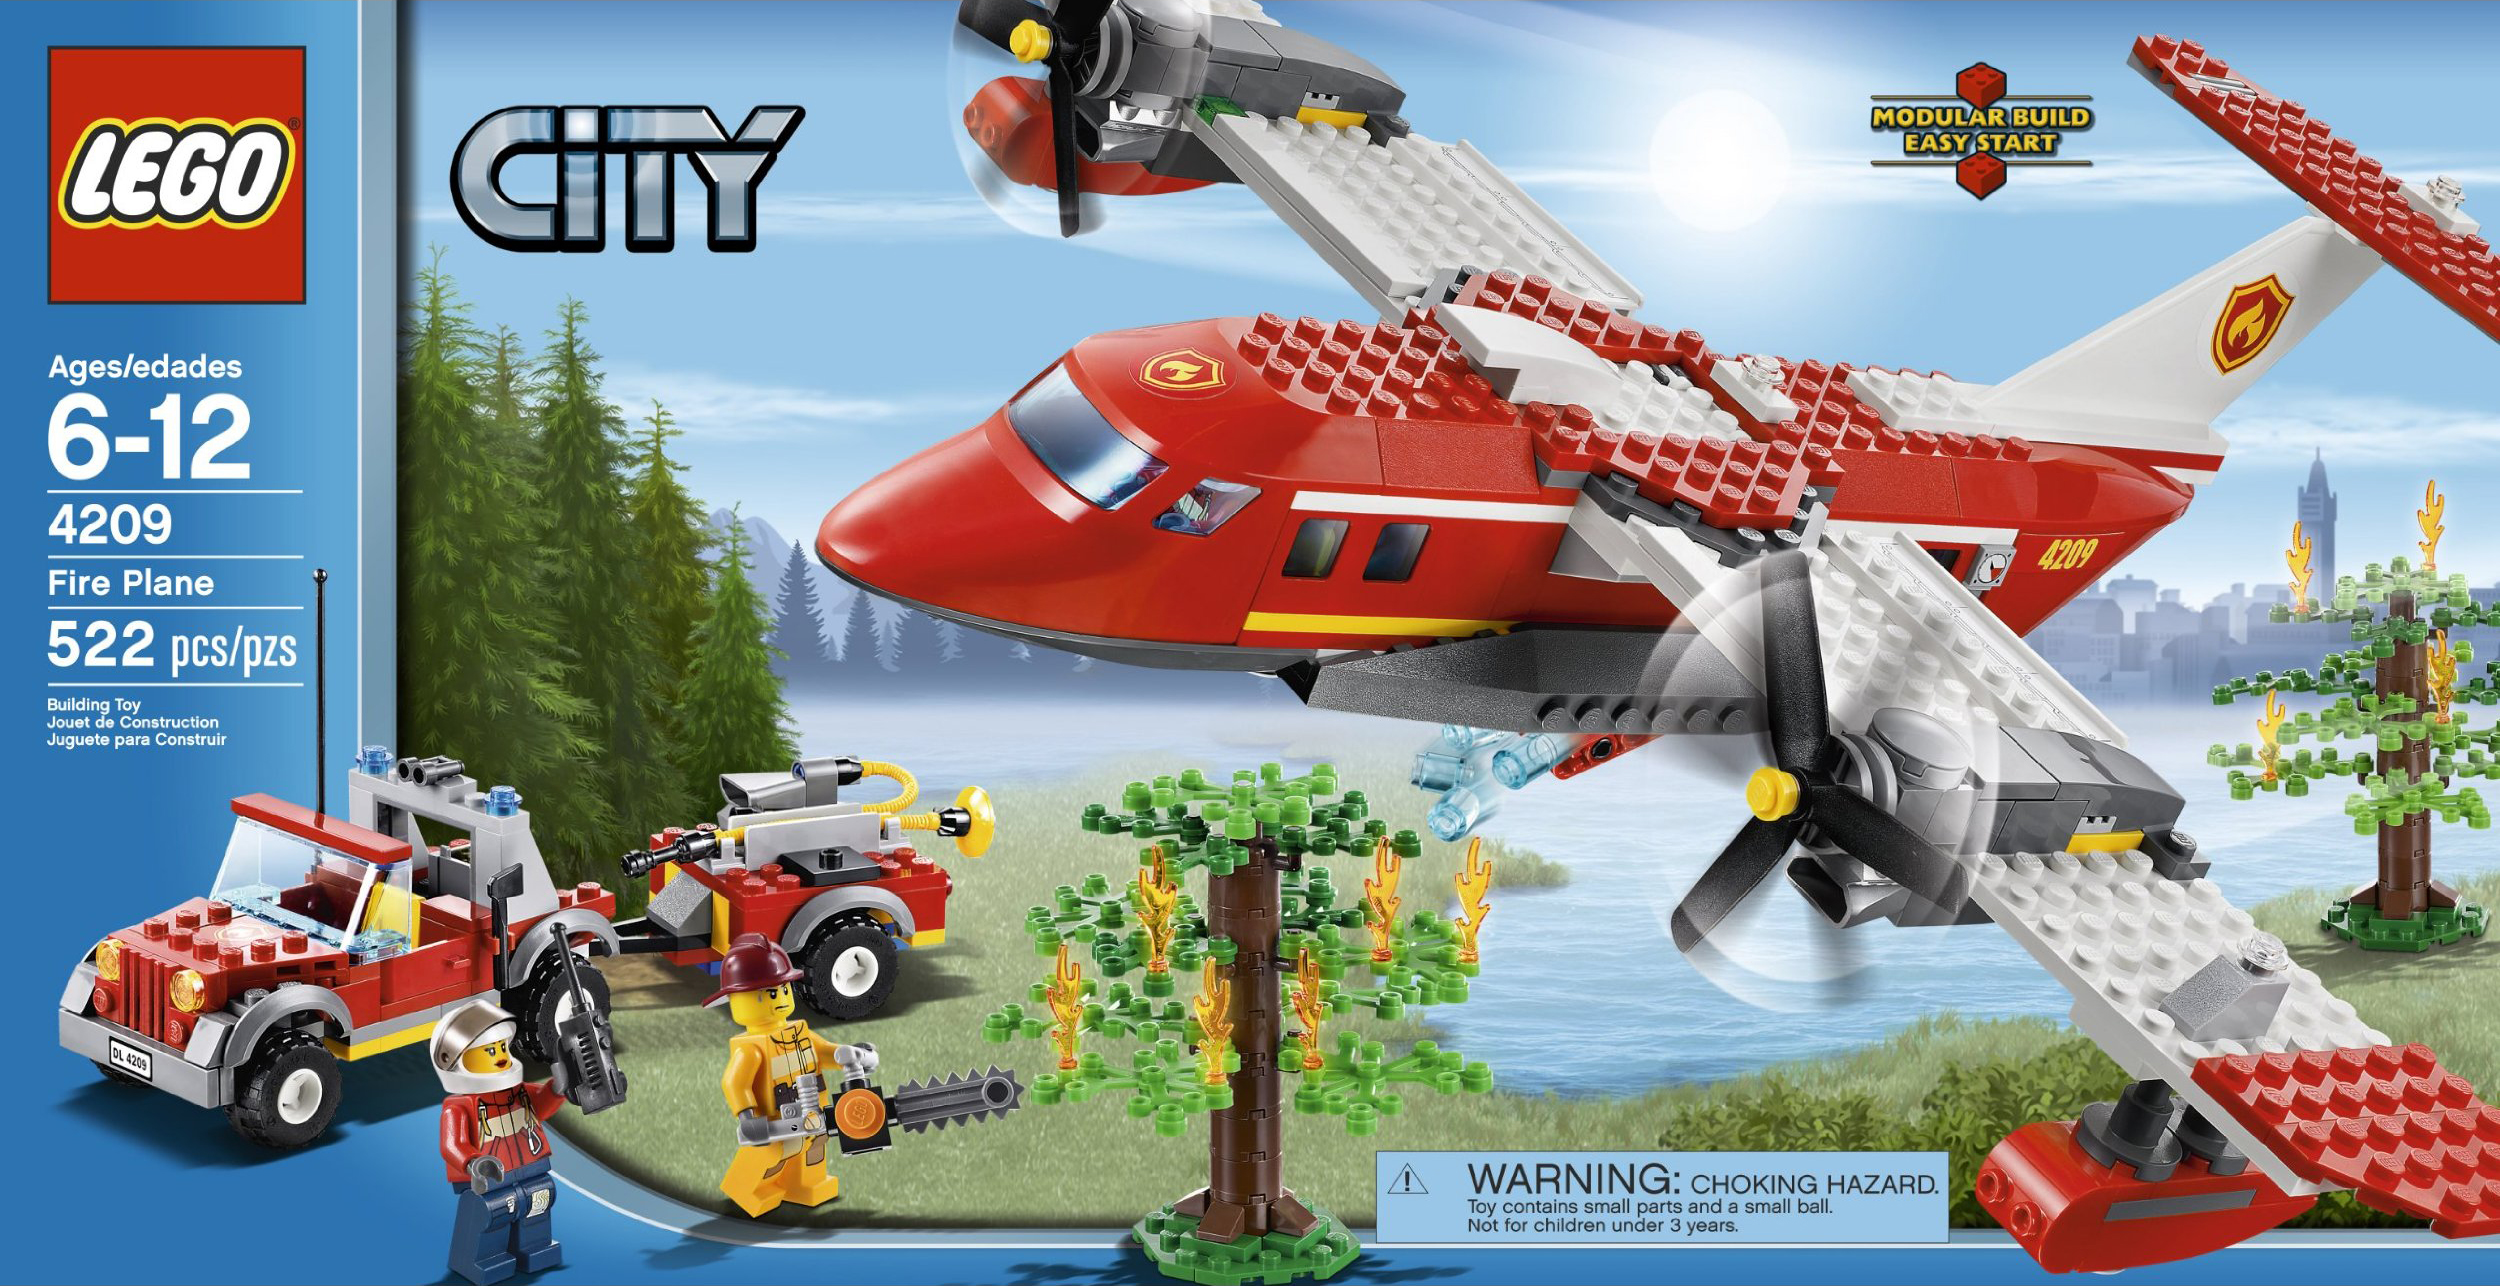 LEGO City 2012 4209 Fire Plane